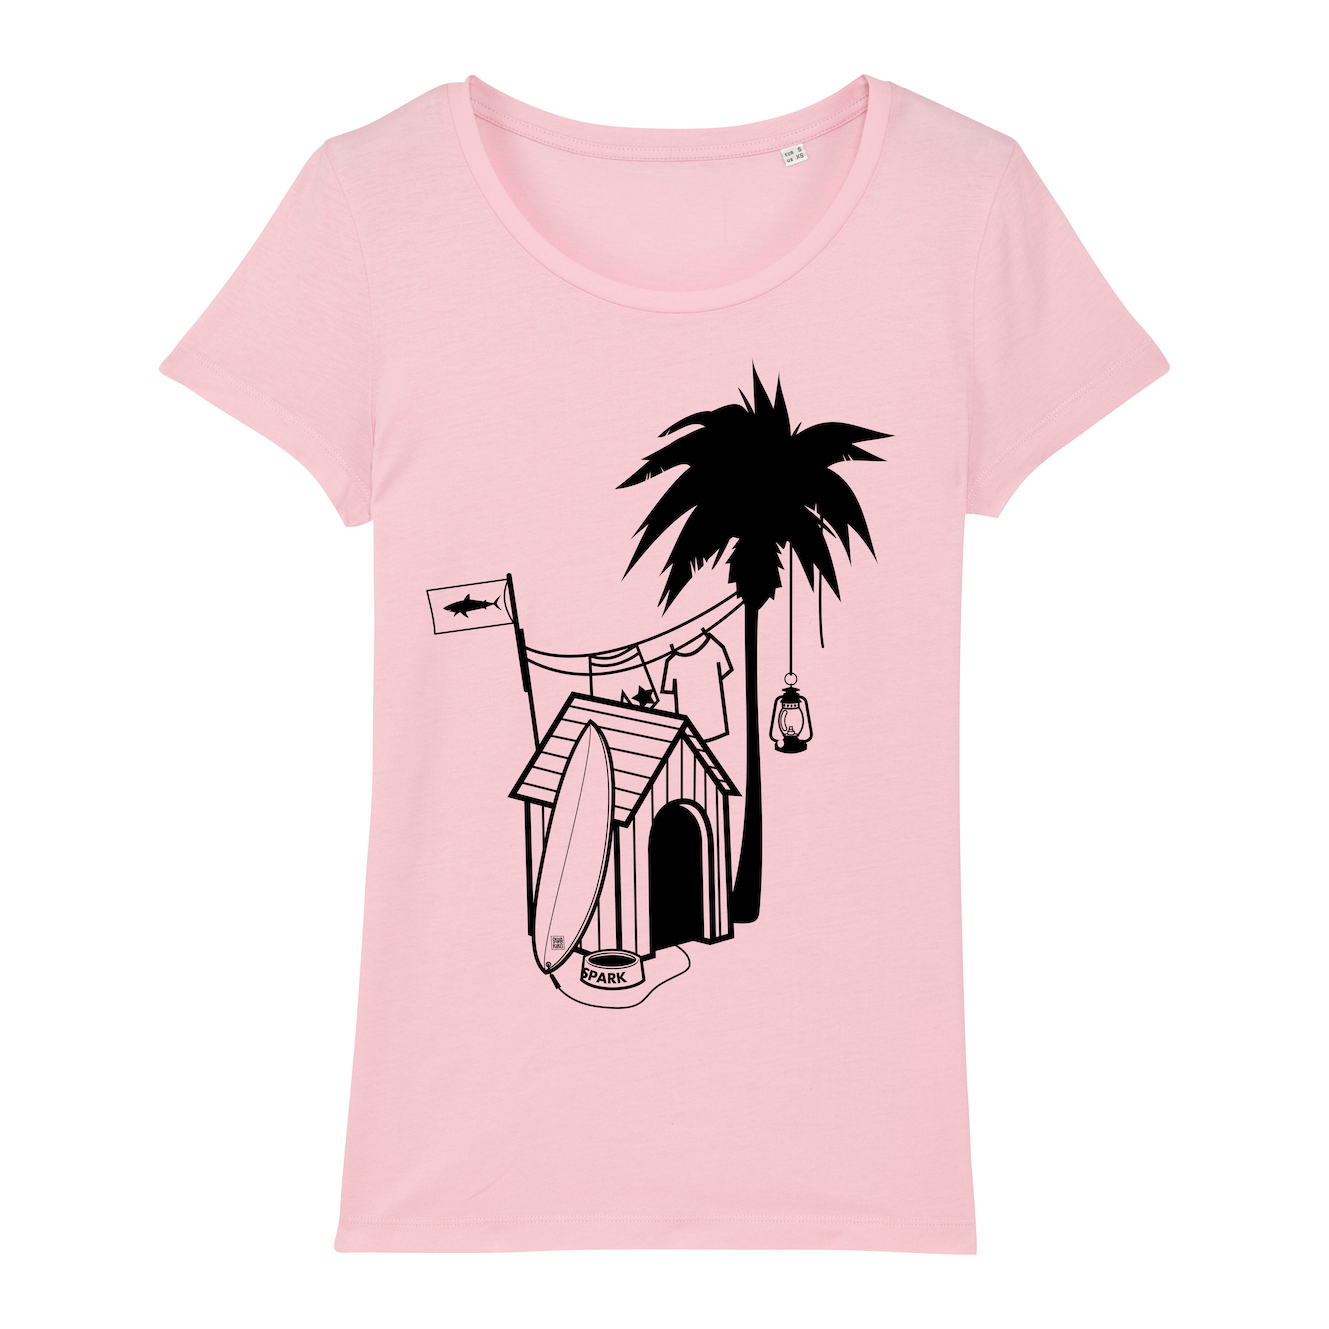 Surf T-shirt, doghouse palm tree, women, pink